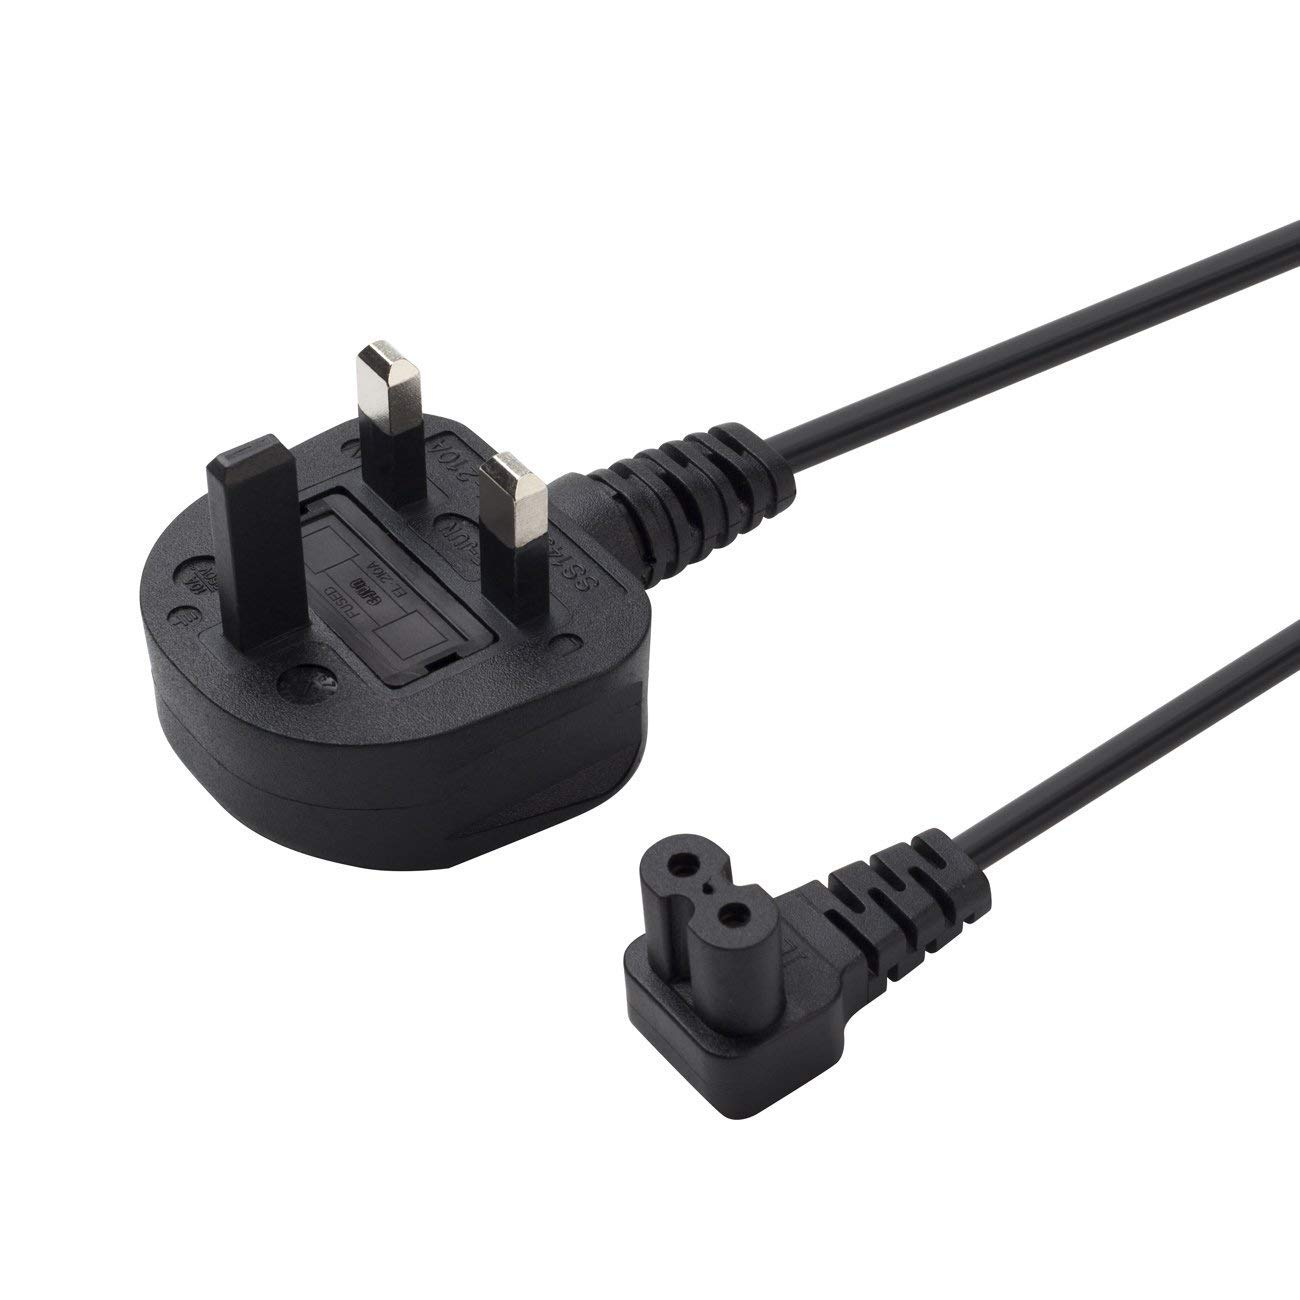 Power Cable UK 3PIN Plug to Right Angled 90 Degree,Figure Fig of 8 IEC C7 Mains Power Lead Cable 3M